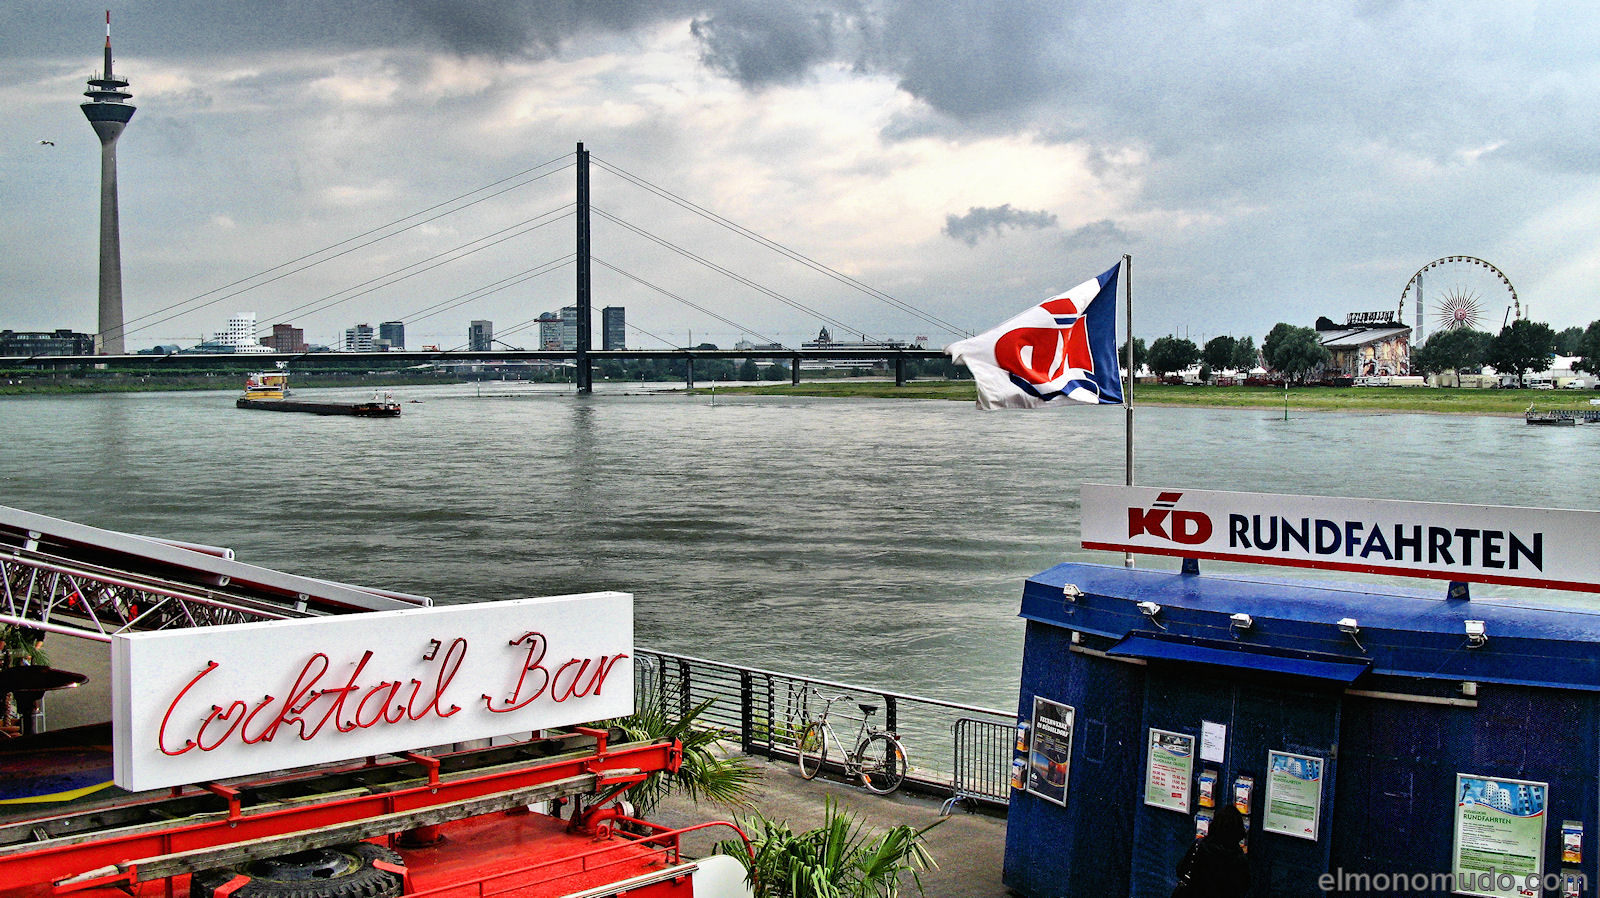 Rhin in Dusseldorf 1600x898